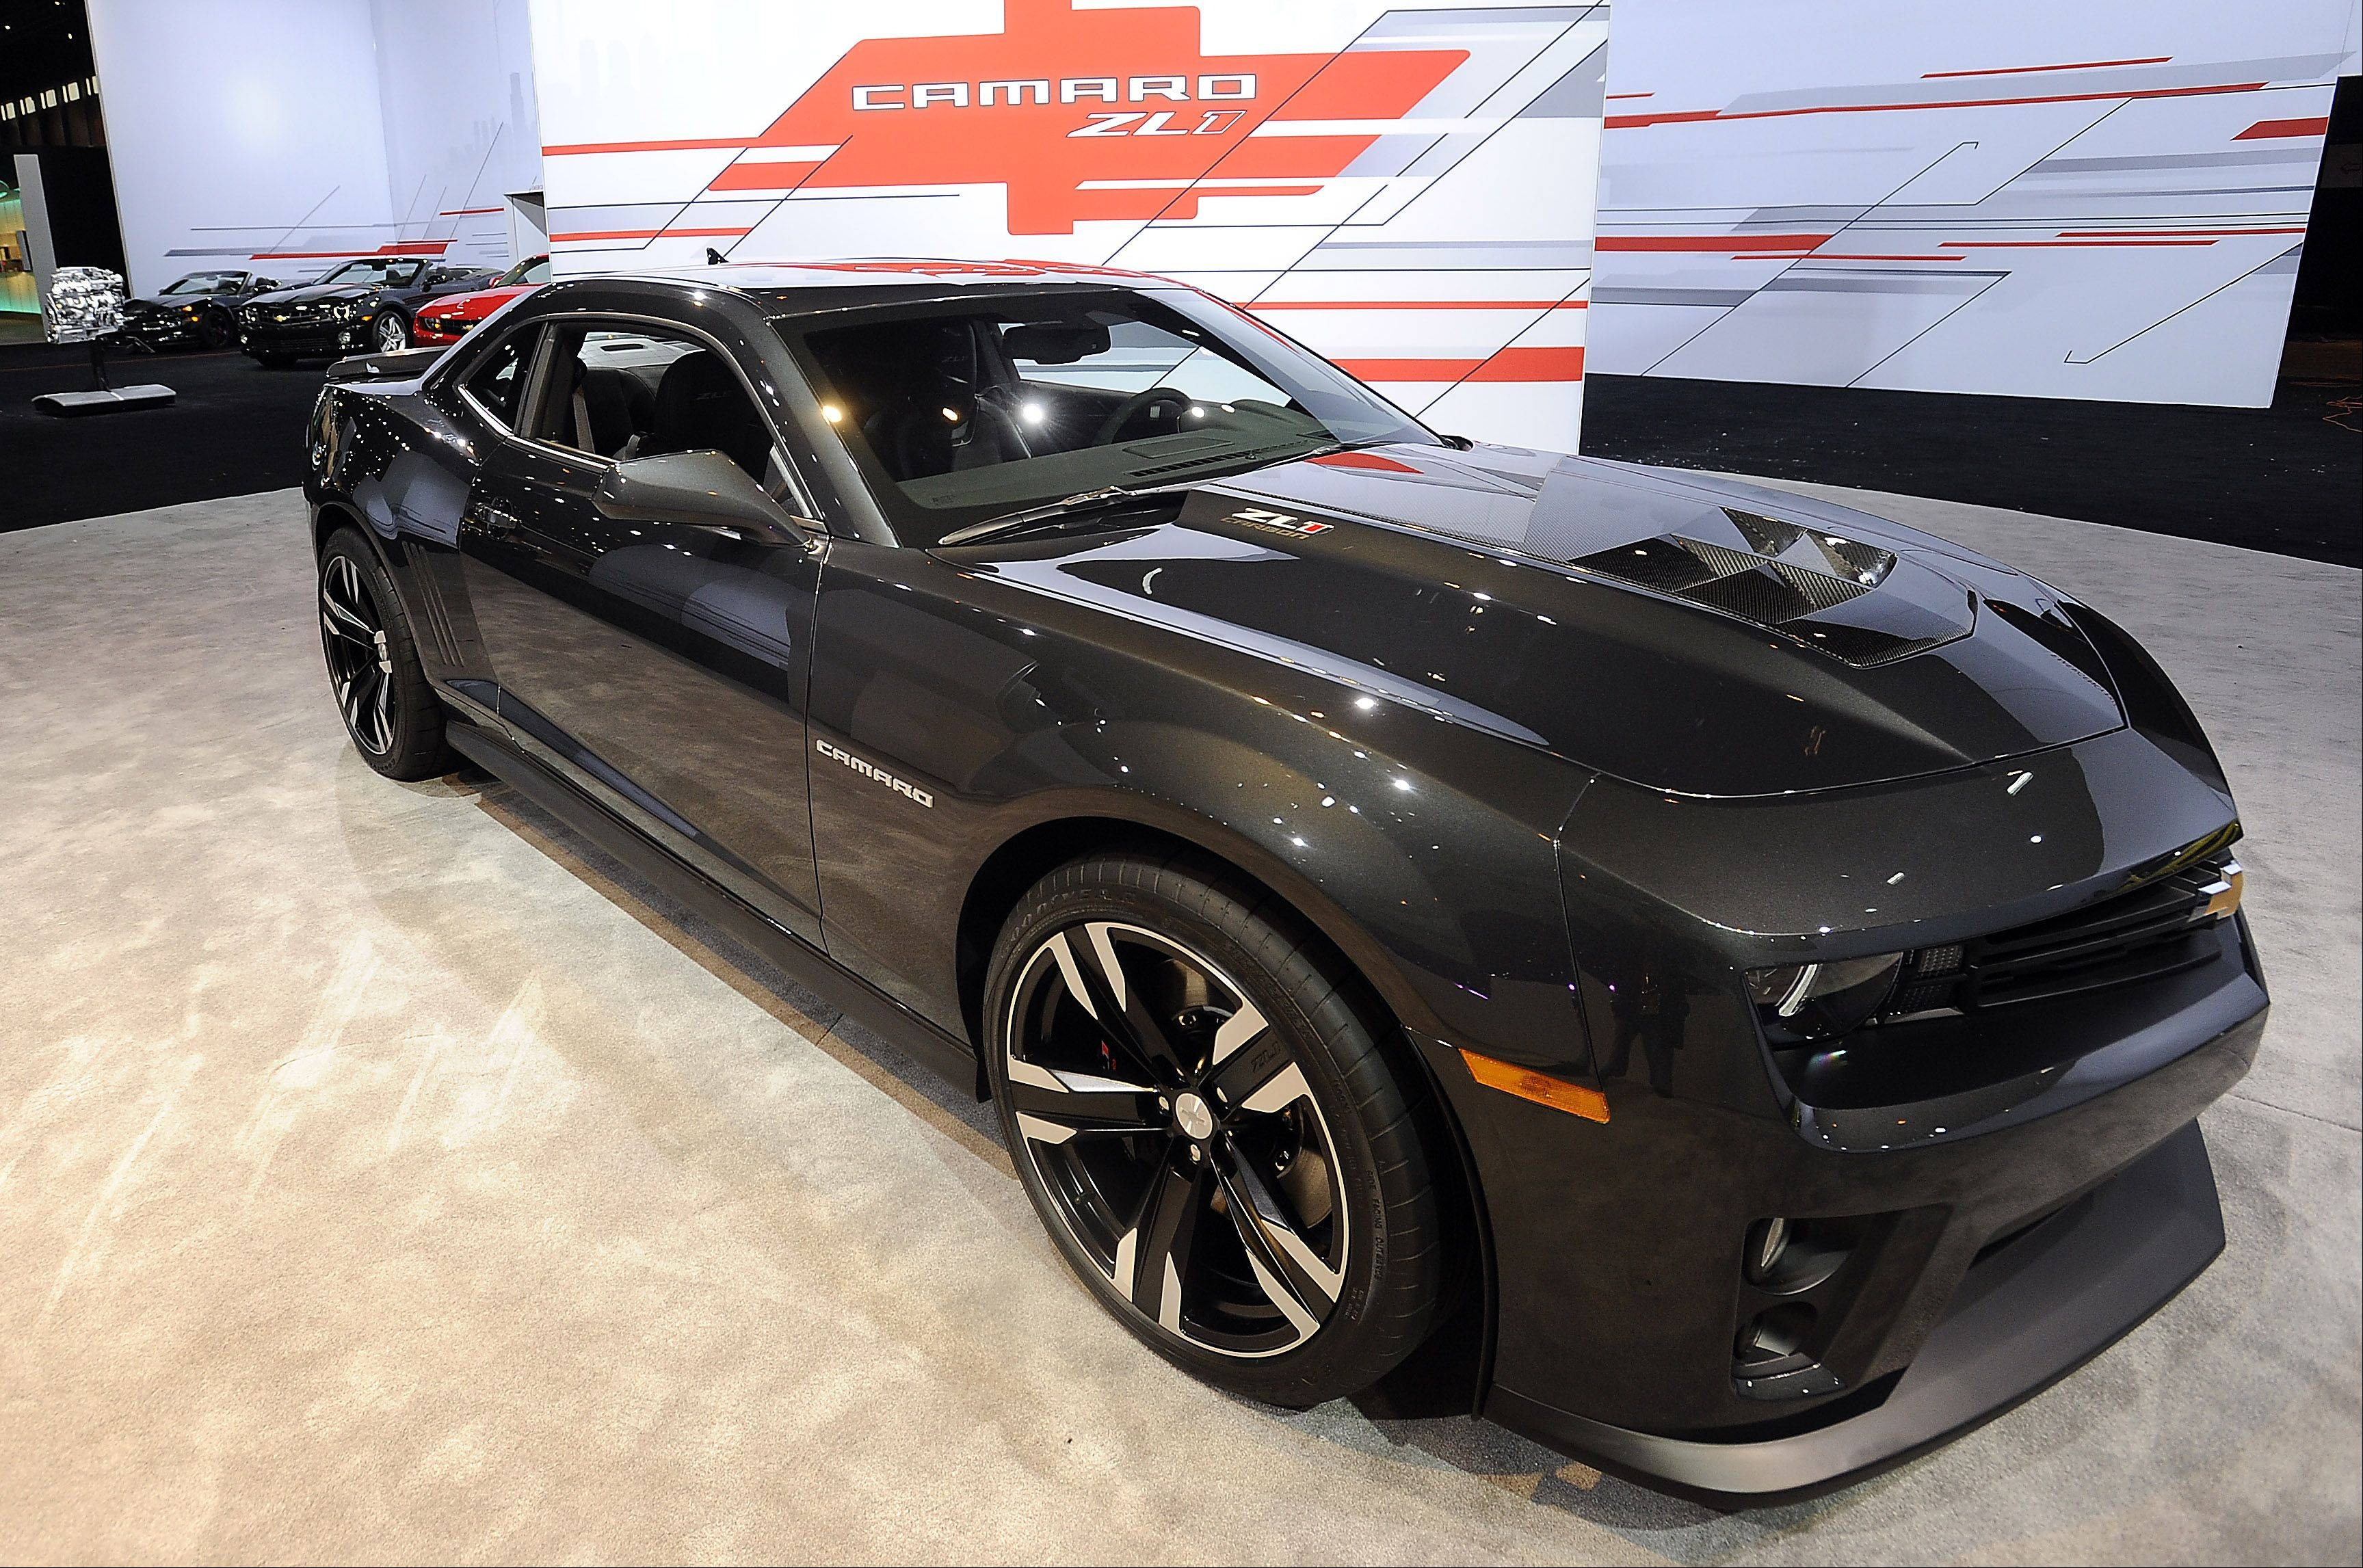 The latest edition of the Chevy Camaro is on display.